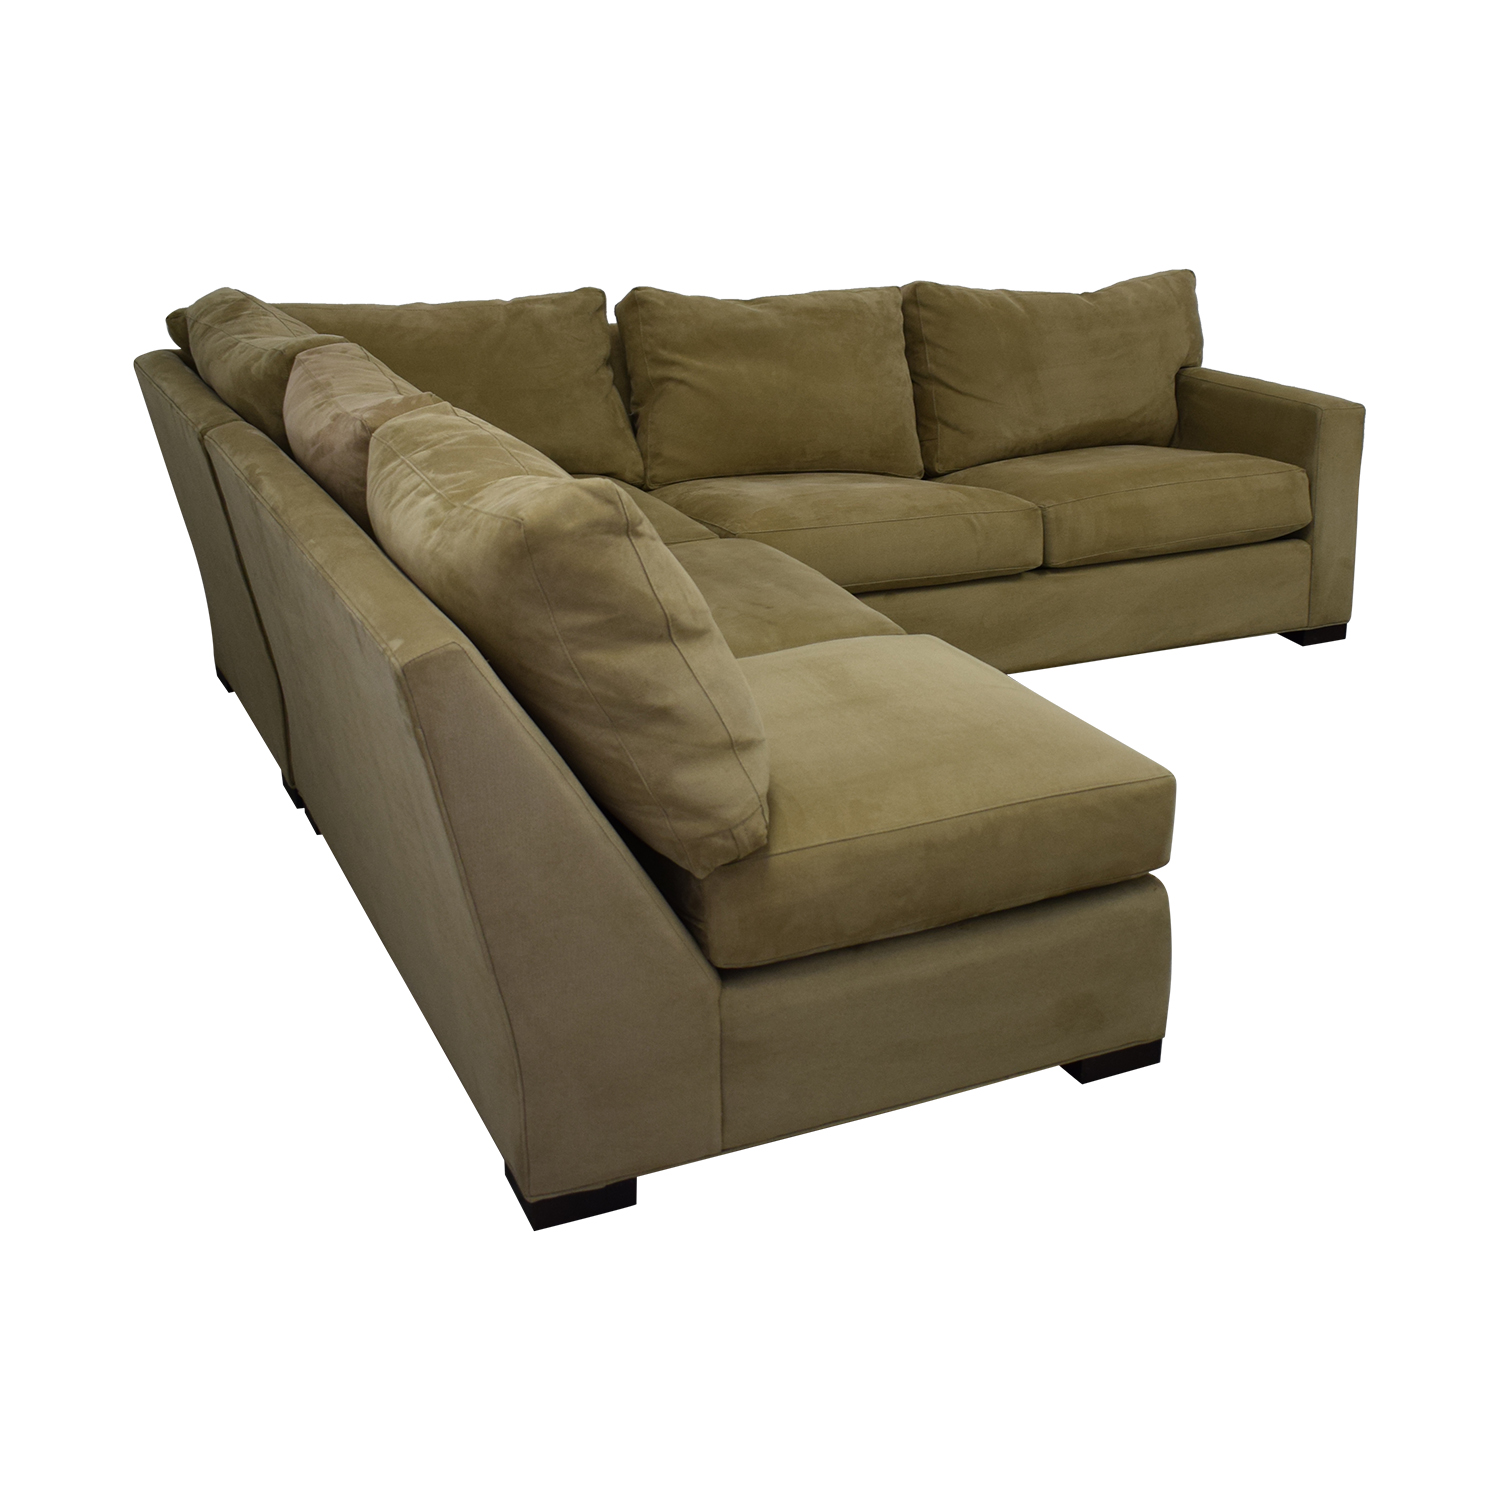 Crate & Barrel Crate & Barrel Axis Beige Three Piece Sleeper Sectional Sofa discount